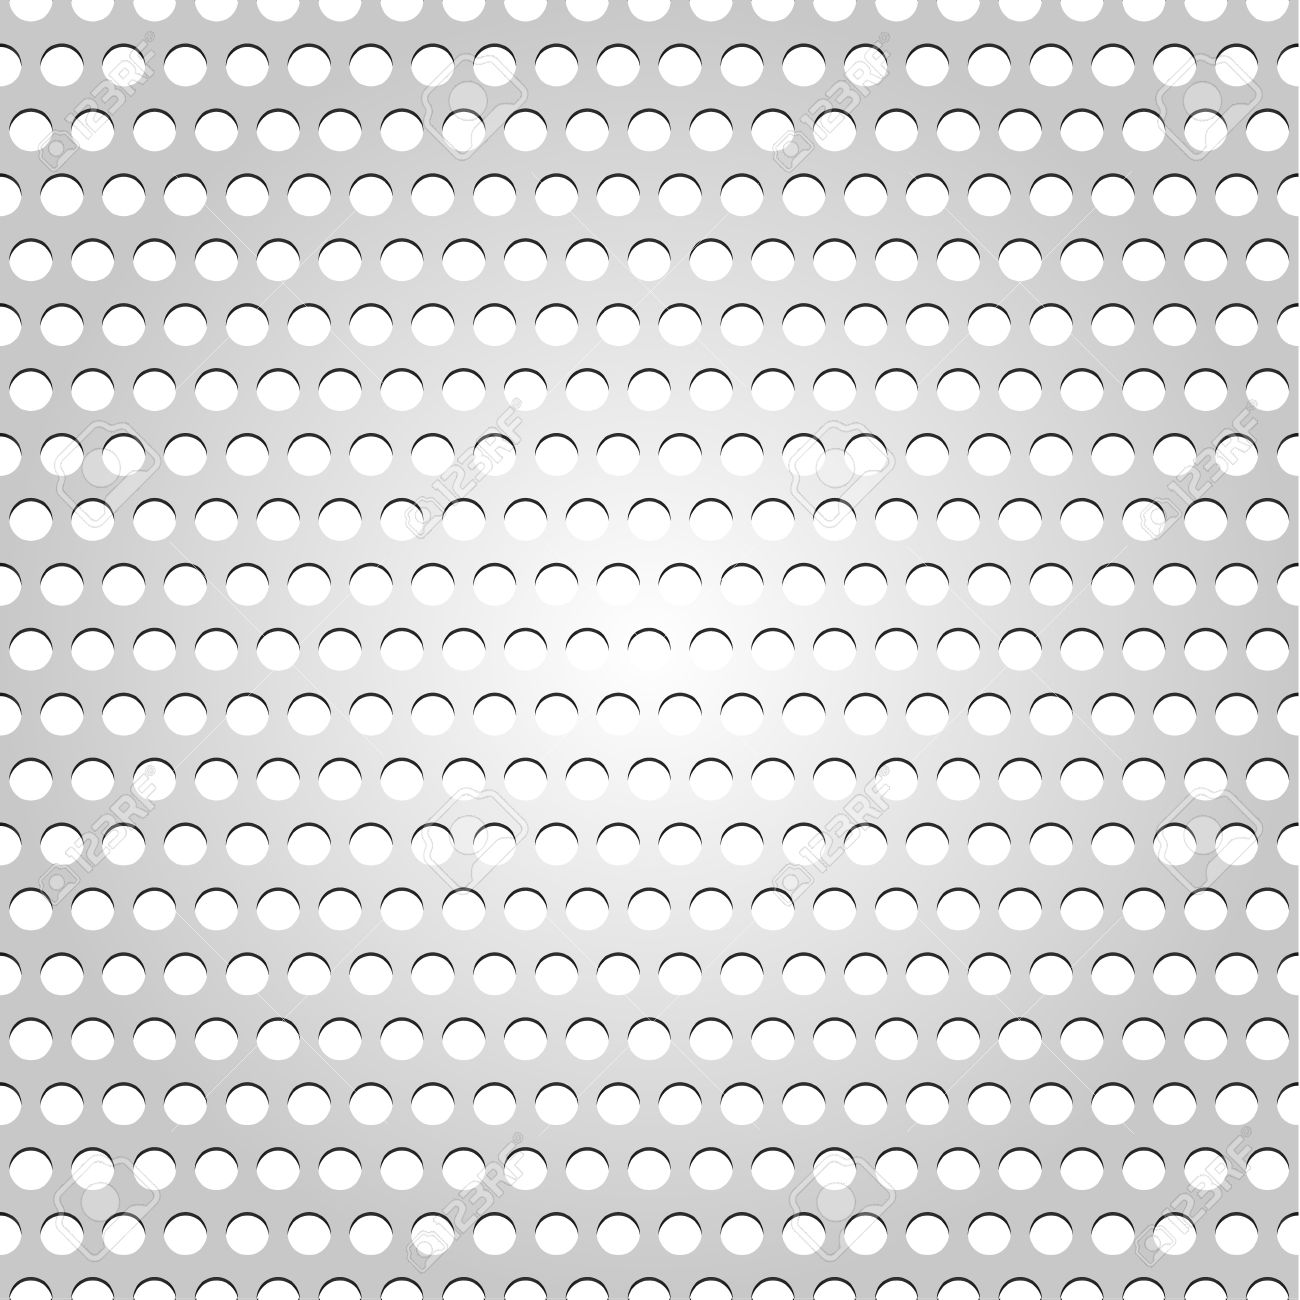 Seamless metal surface, gray background perforated texture Stock Vector - 12178539